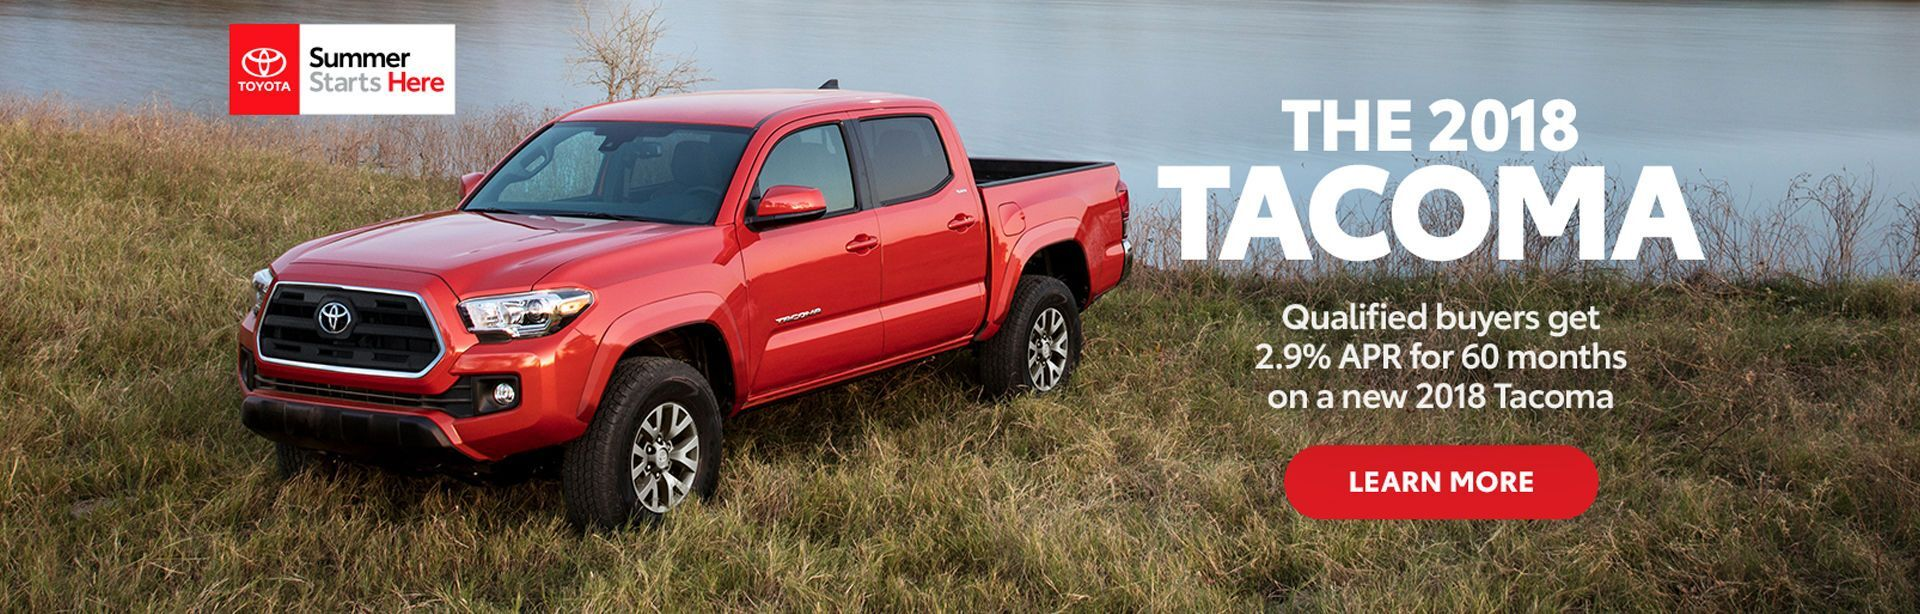 Summer Starts Here GST Tacoma